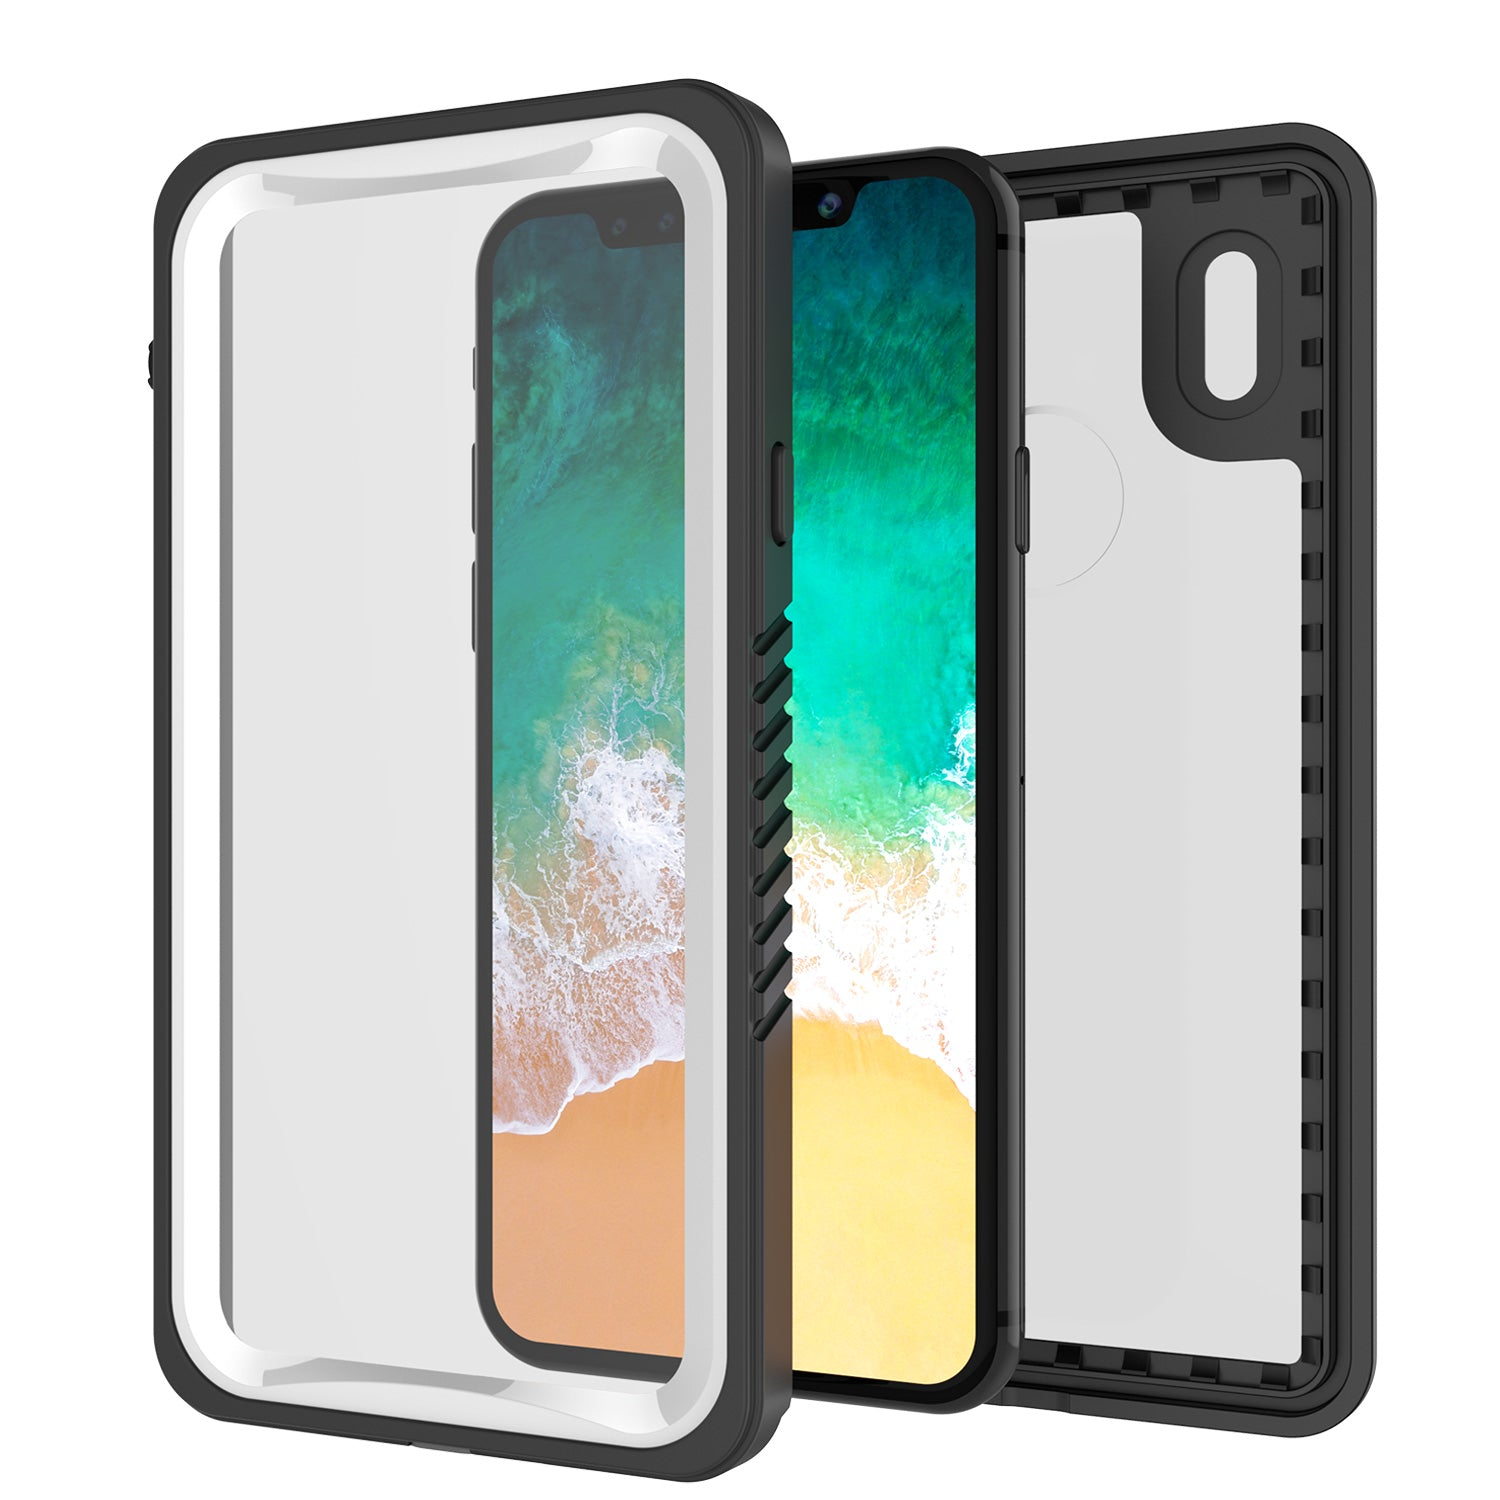 iPhone X Case, Punkcase Extreme Series | Slim Fit | IP68 Certified | Shockproof | Snowproof | Dirtproof  Armor Cover [White]